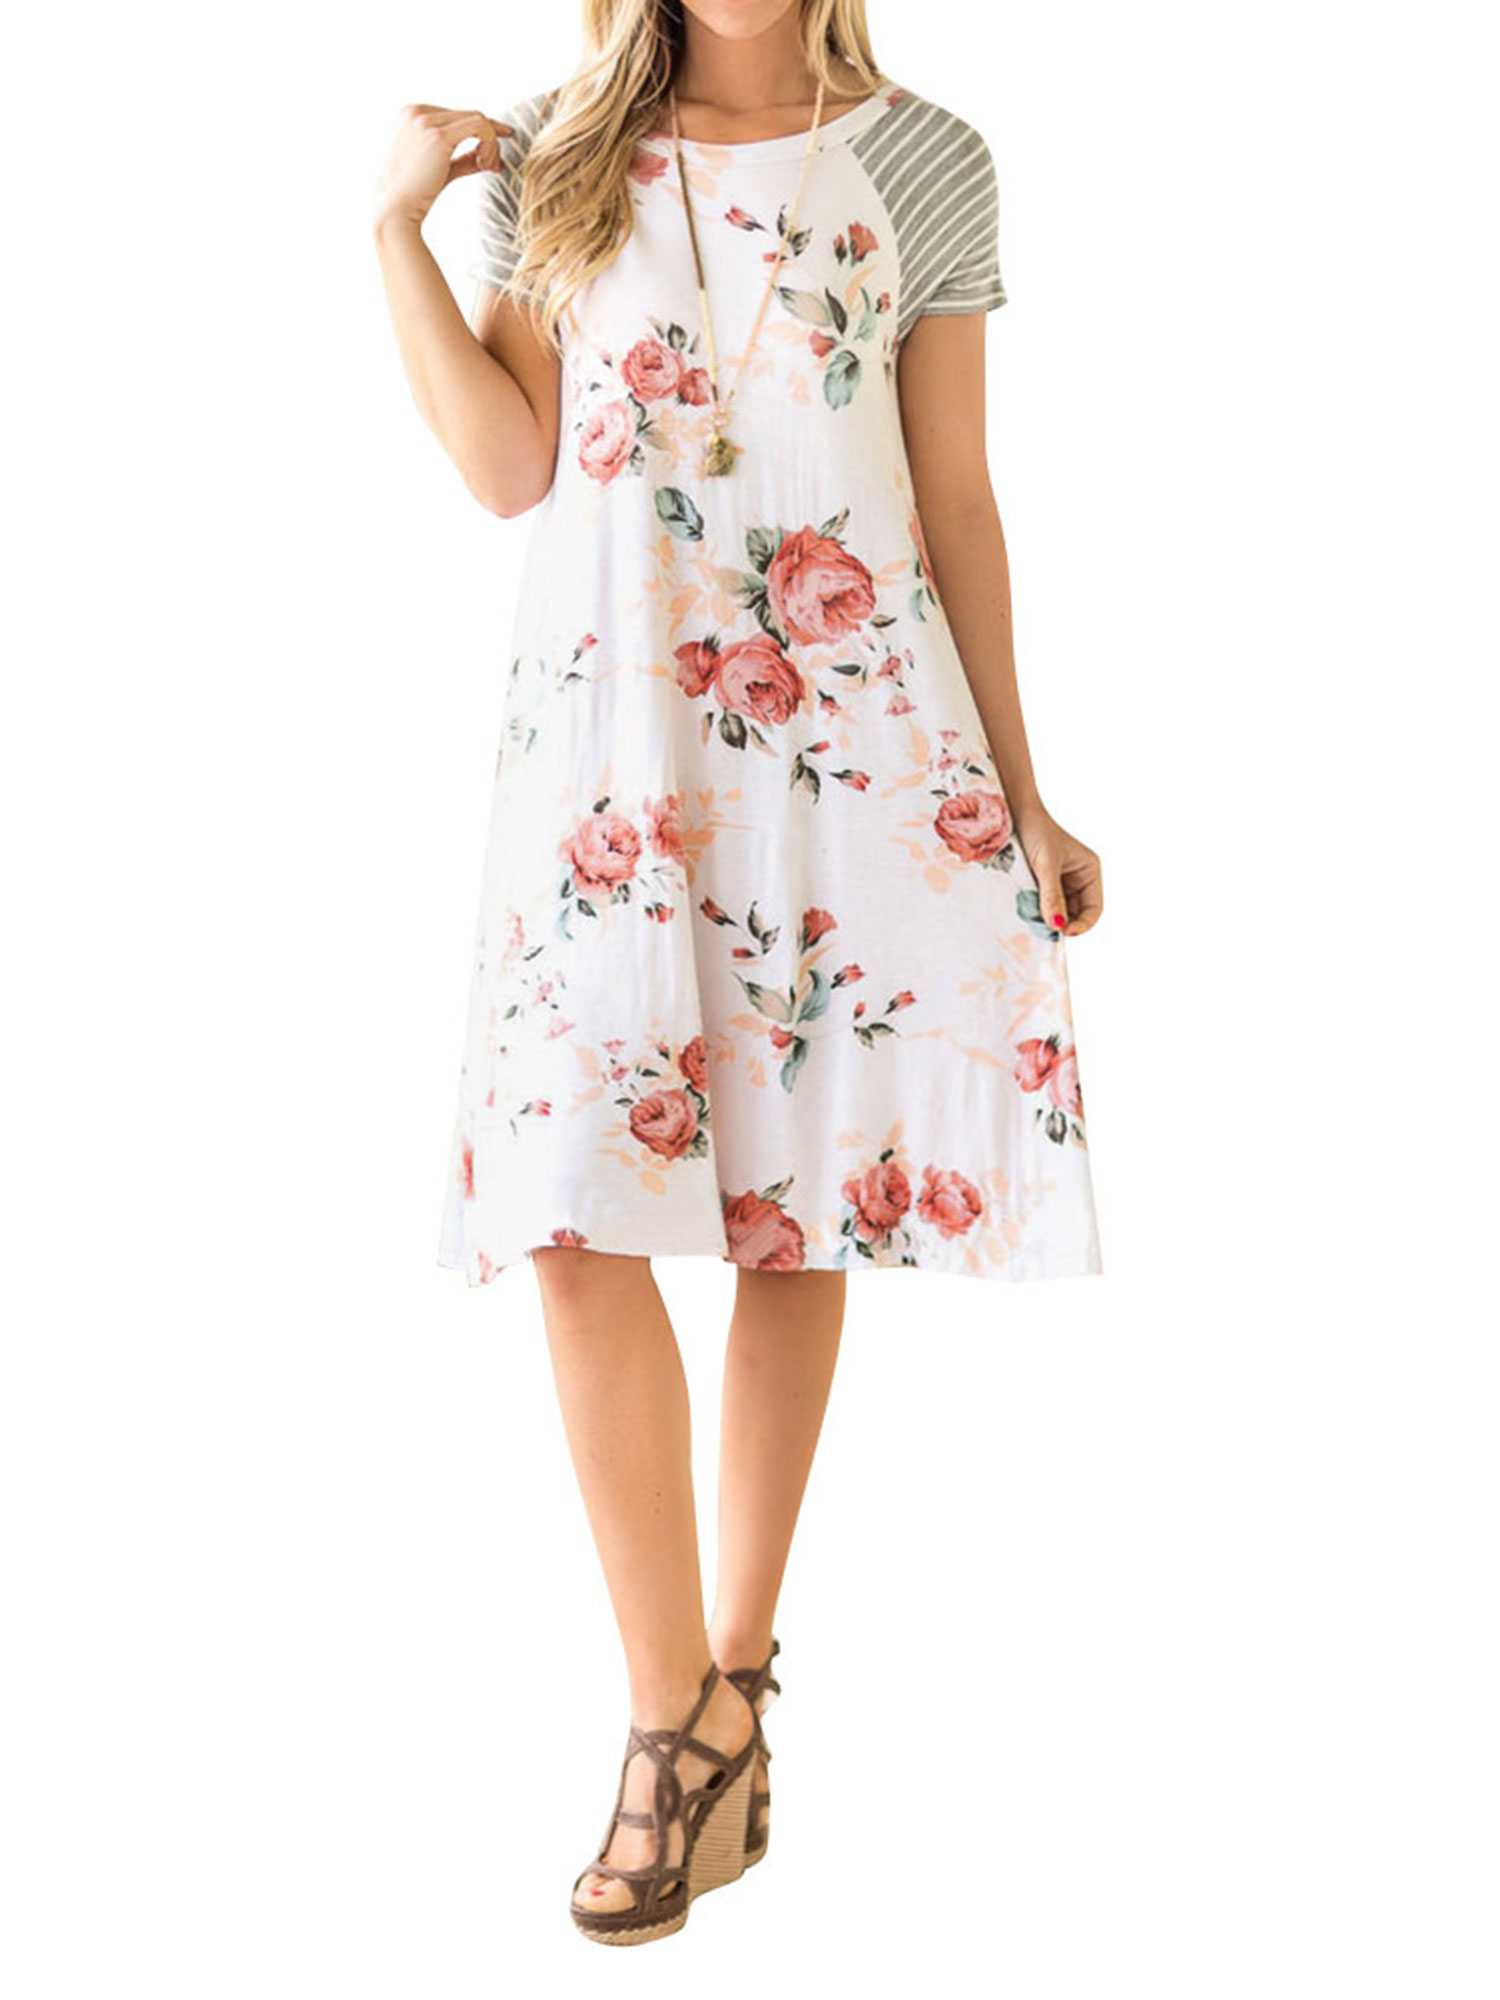 Click here to buy Nlife Women Striped Sleeve Floral Print A-line T-shirt Dress.